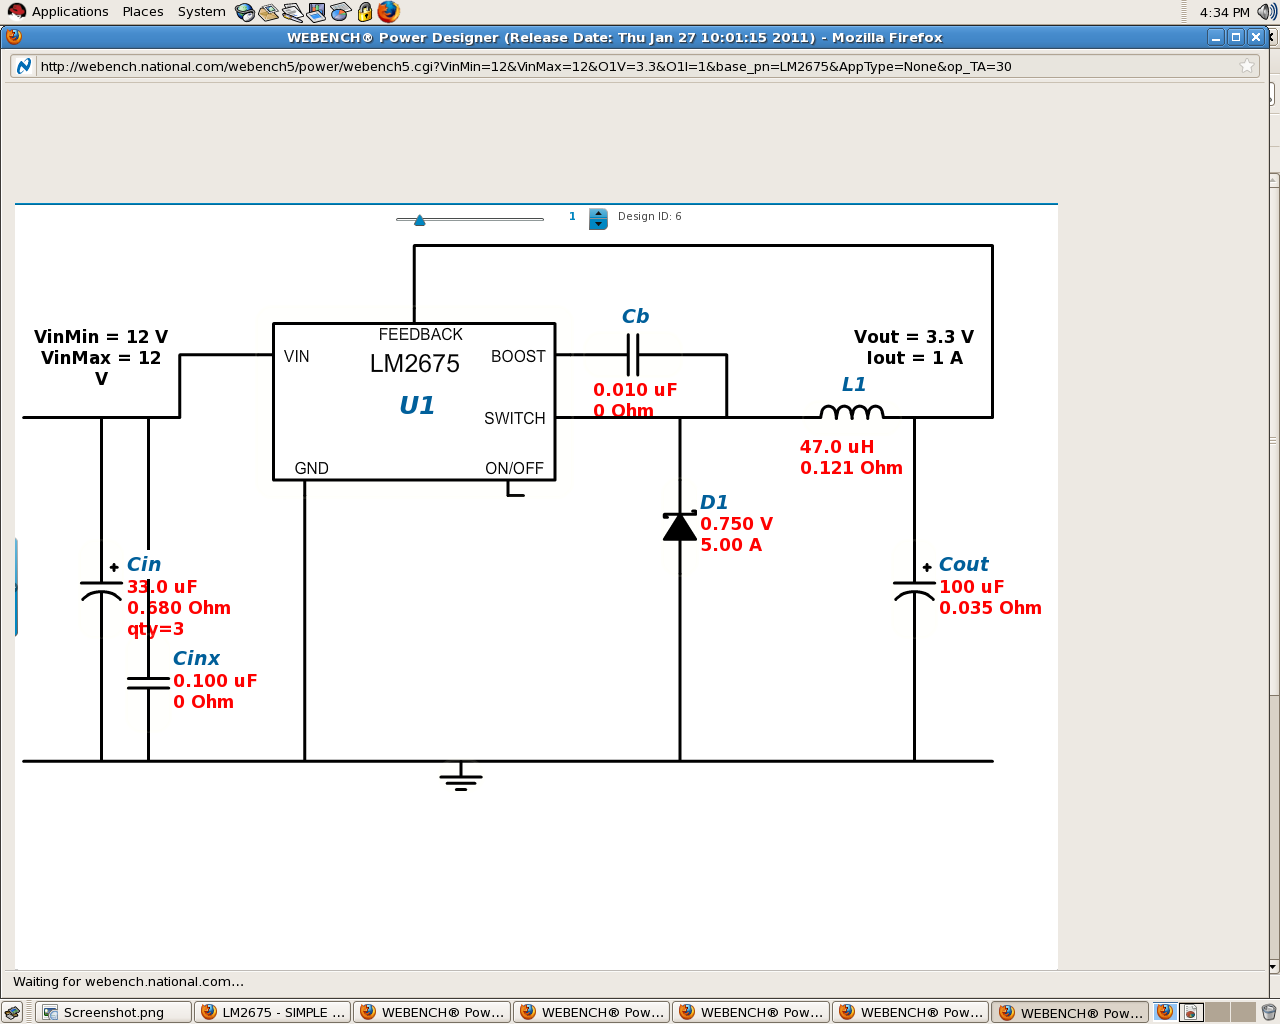 Sebastians Lab Notebook And Built The Circuit As Shown Using An Lm317 Voltage Regulator Week 05